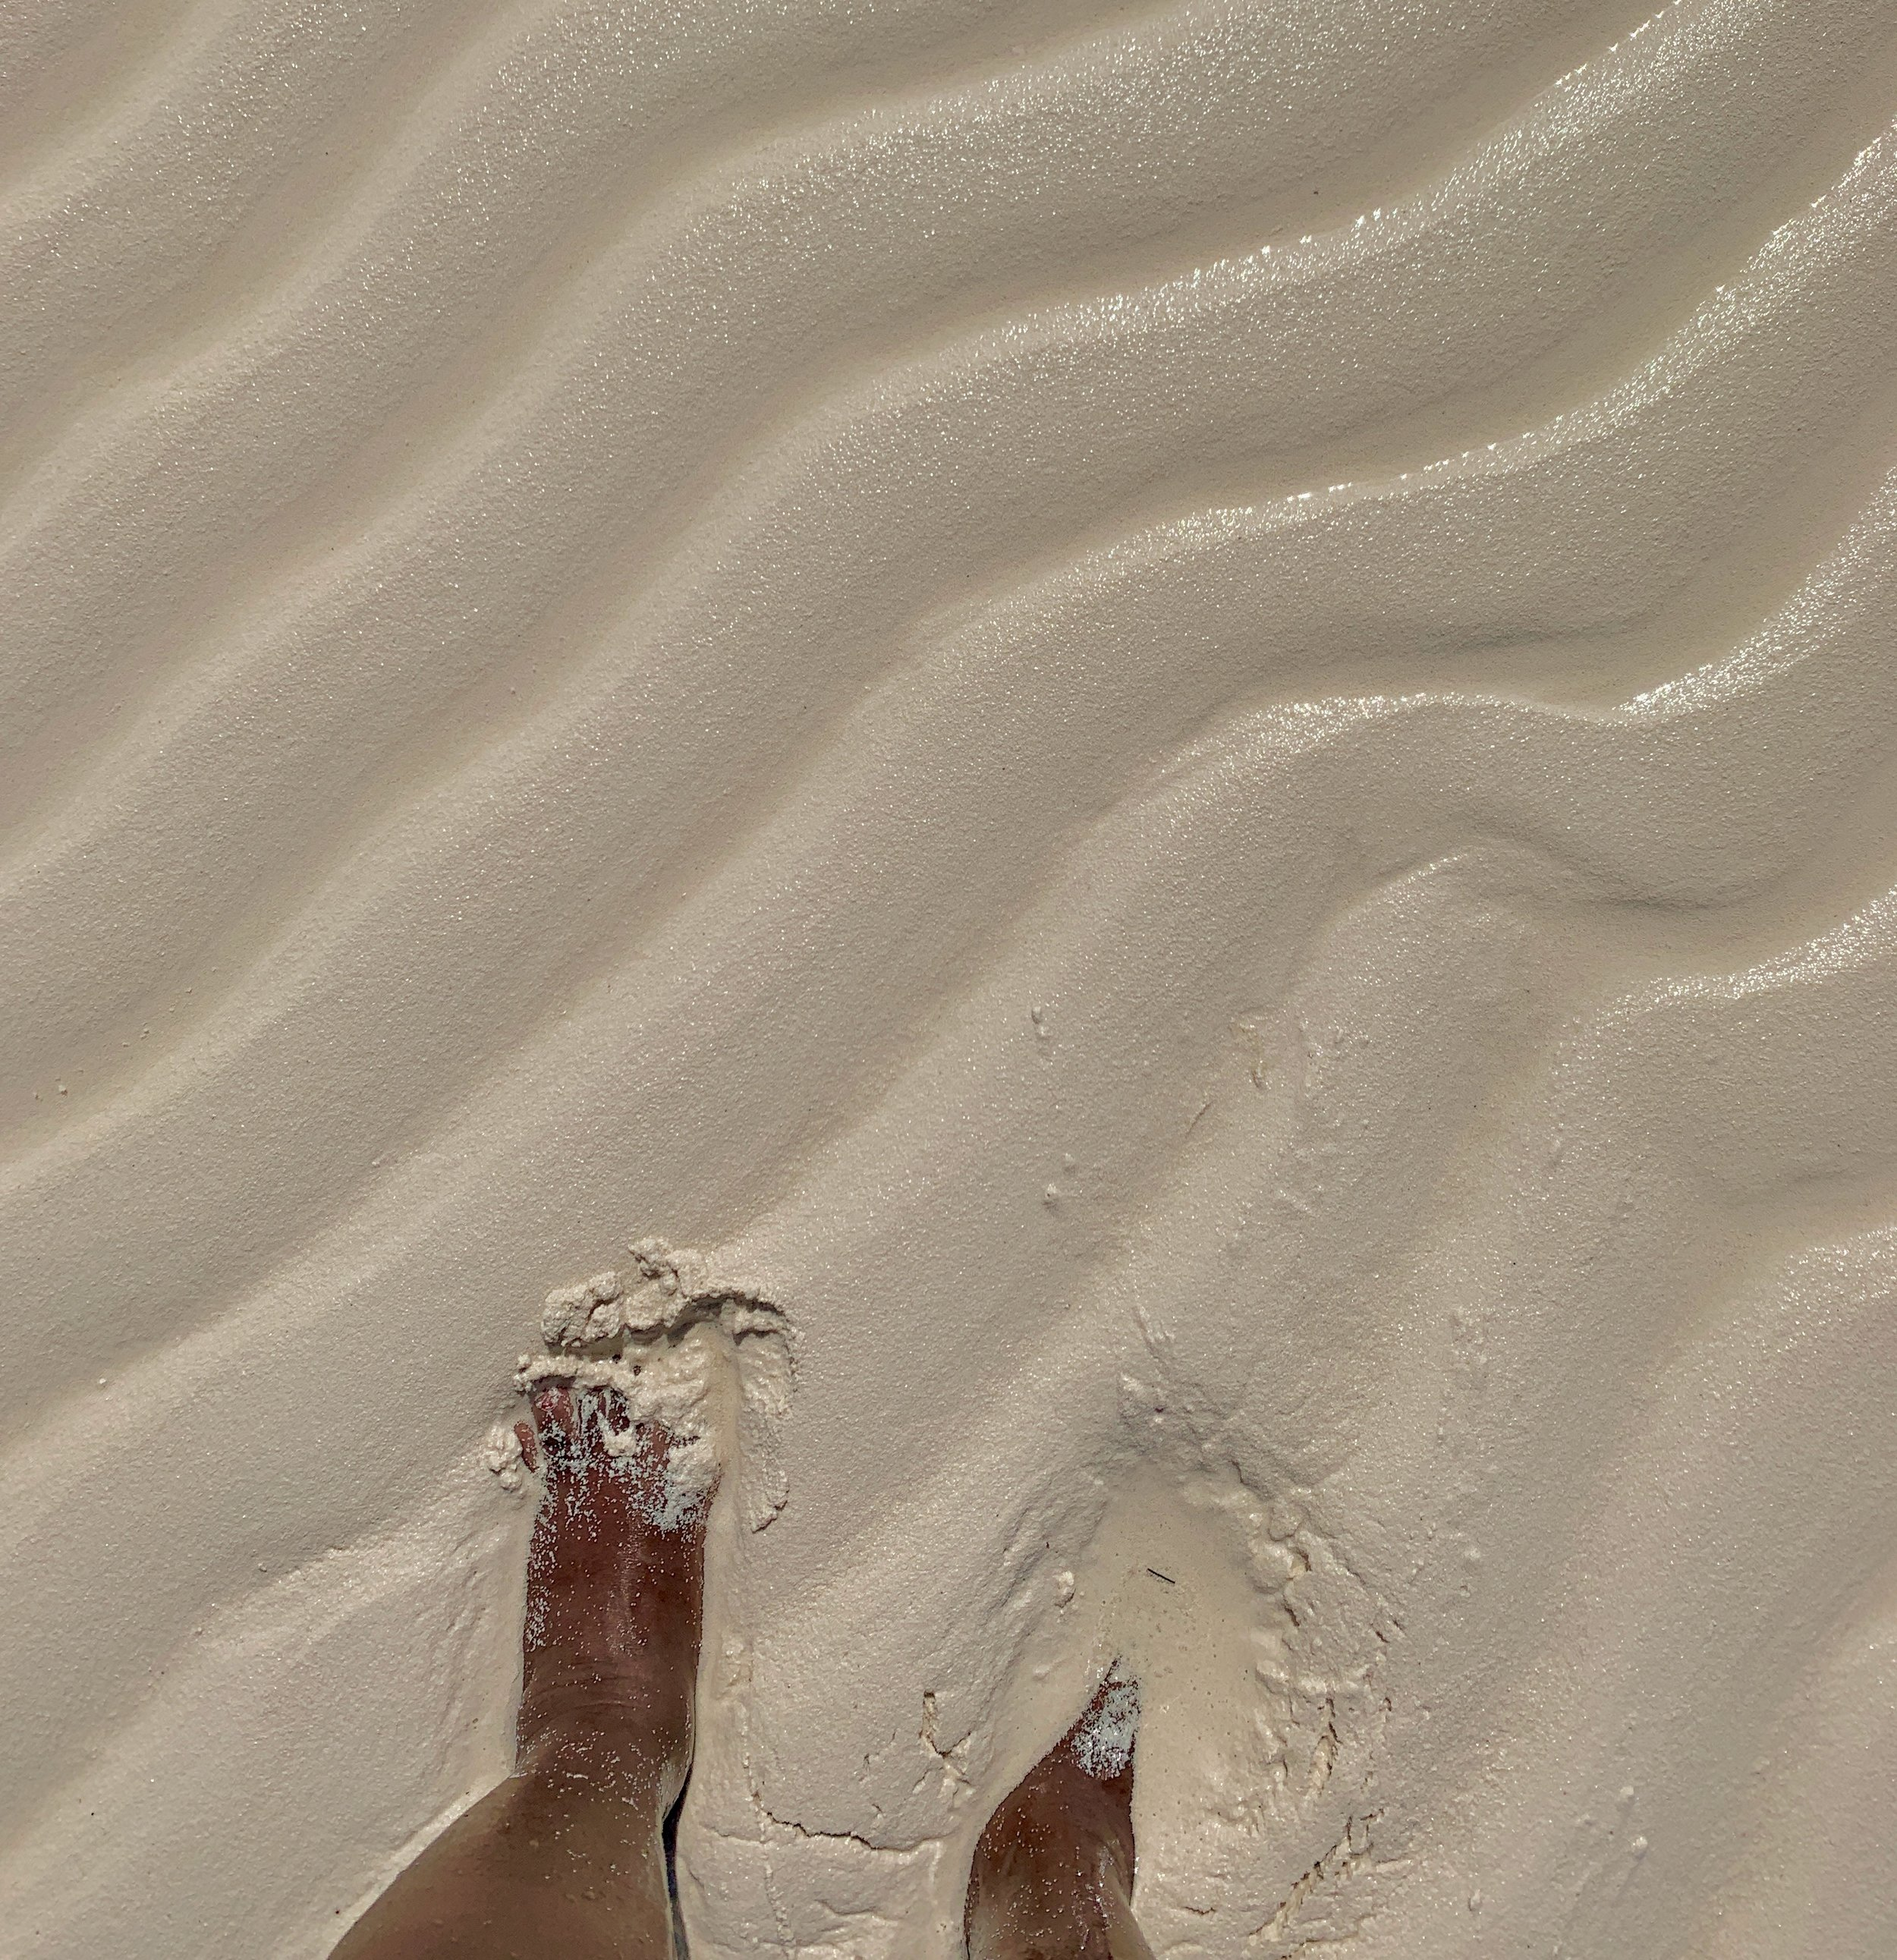 Can you believe this sand?!